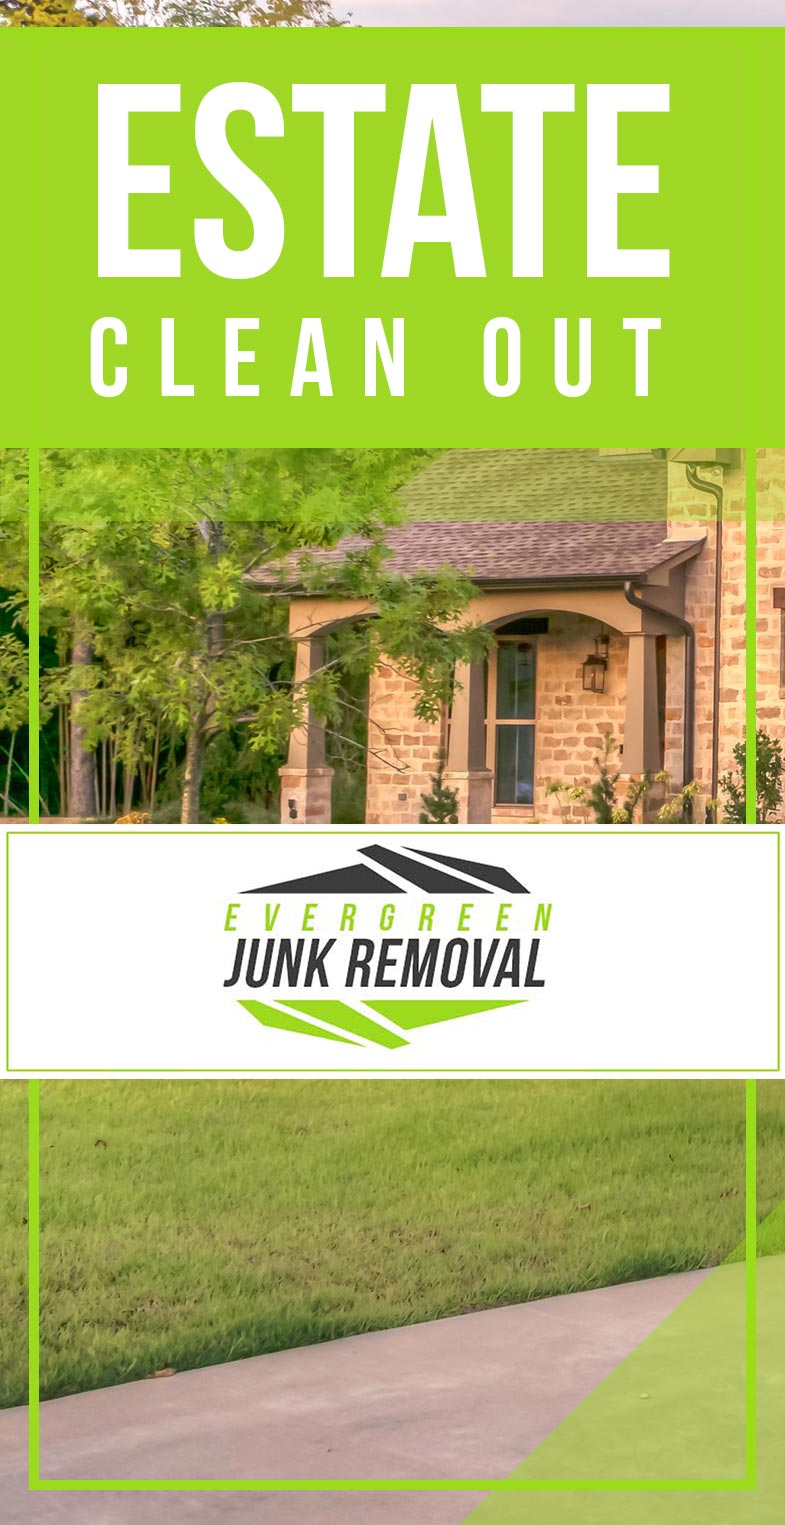 Mission Bend Property Clean Out